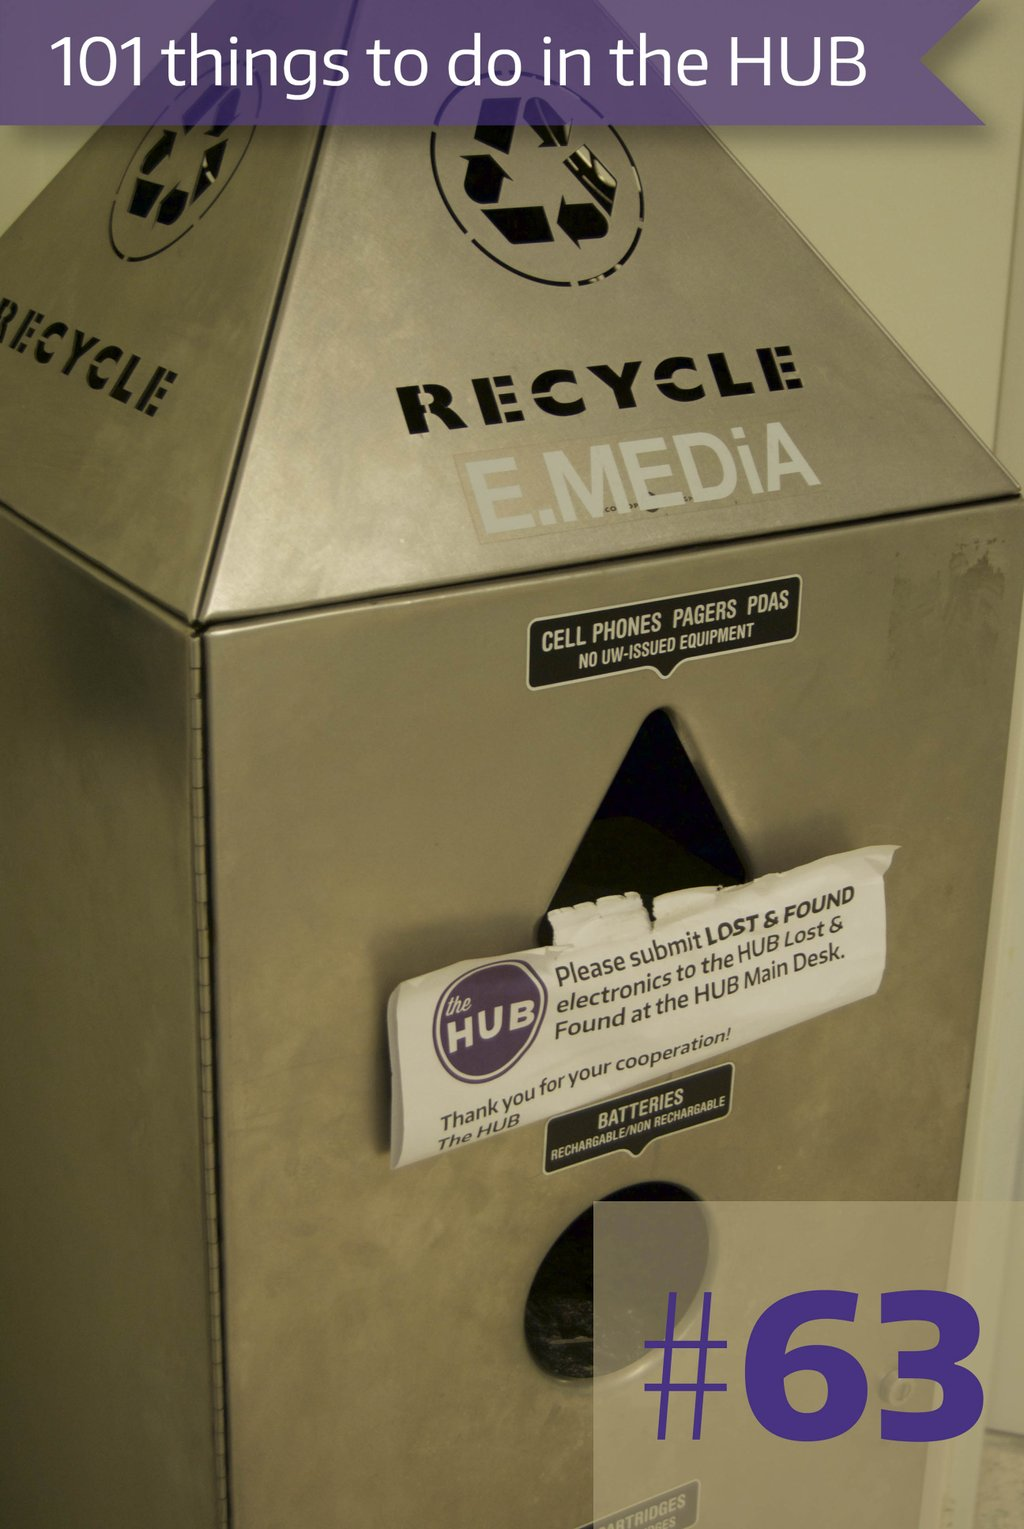 63. Recycle batteries, ink cartridges, electronics, and other media at the HUB